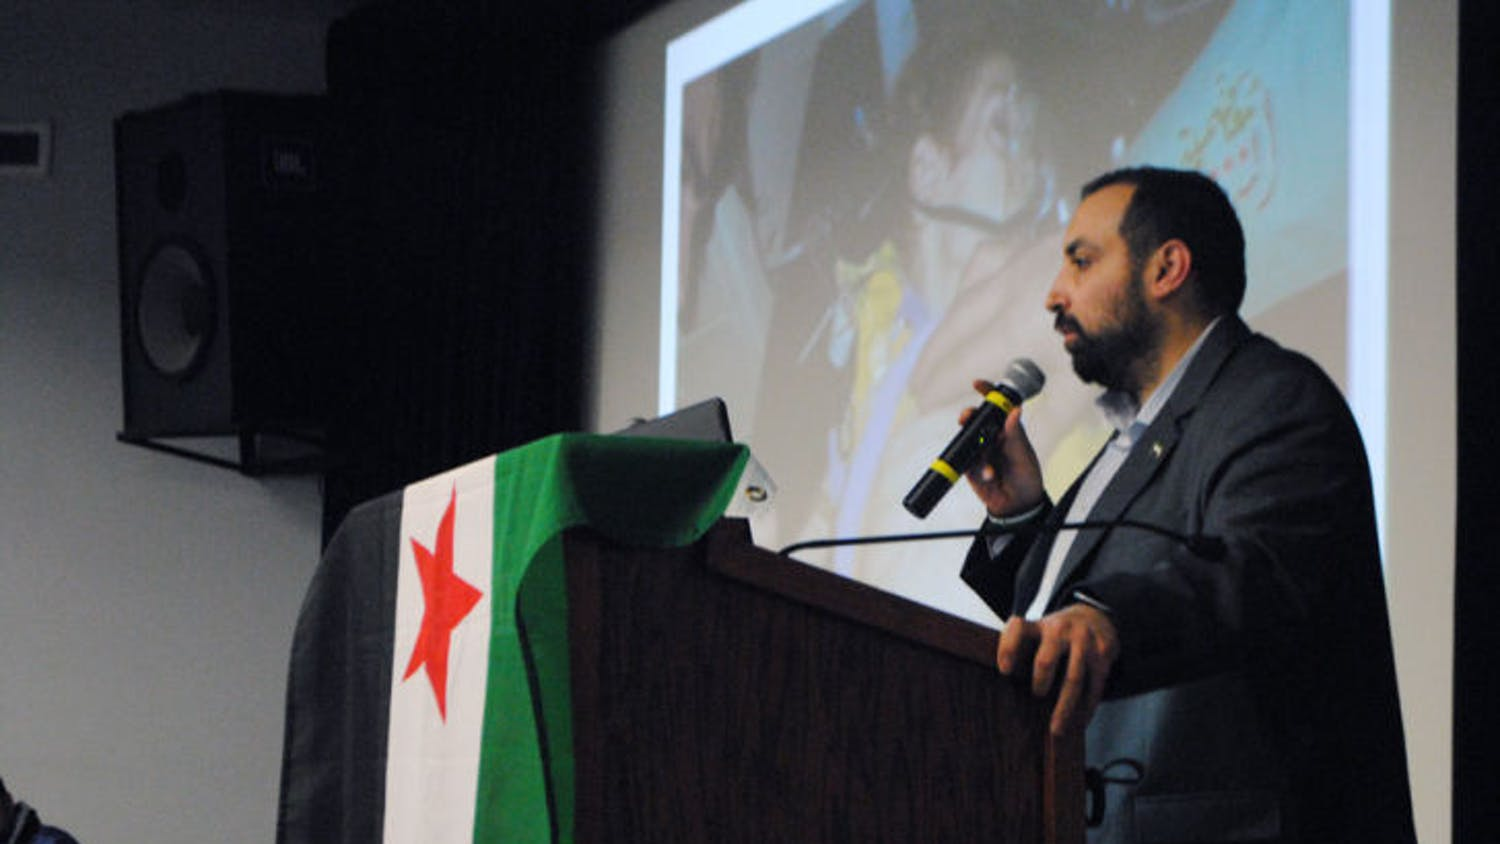 Mohamad Khir Alwazir speaks of his experience as a survivor of a chemical weapons attack in Syria. The Arabic Cultural Association at UF and UF Amnesty International hosted the event Monday evening.